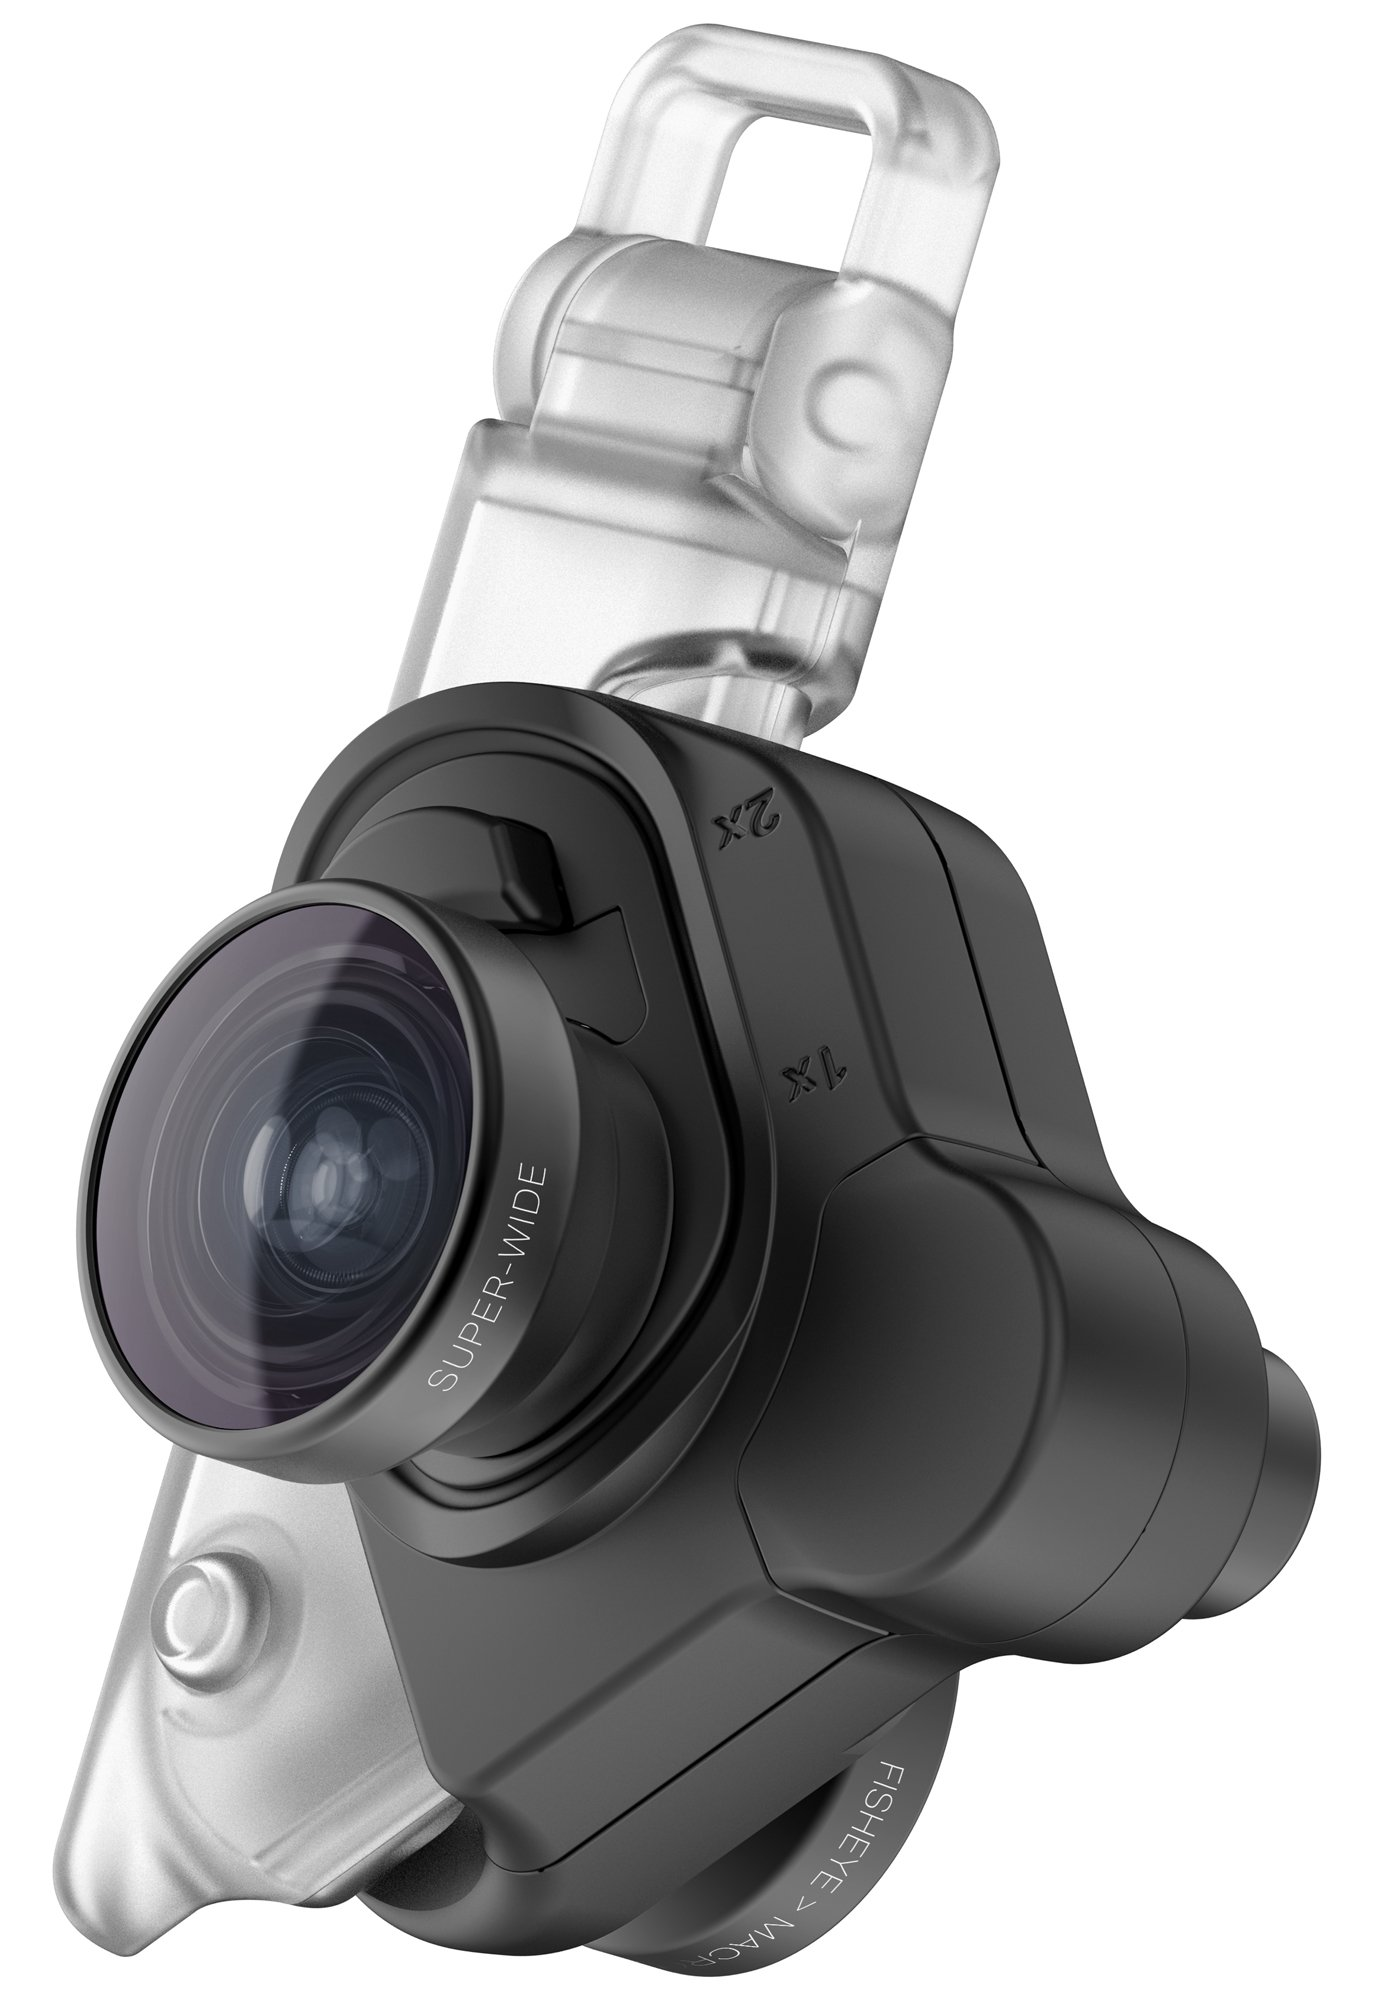 sports shoes 4f875 a3e48 olloclip Mobile Photography Box Set for iPhone X - Cell Phone Camera Lens  Attachment - Black Lens/Black Clip On - Includes Fisheye, Super-Wide, Macro  ...